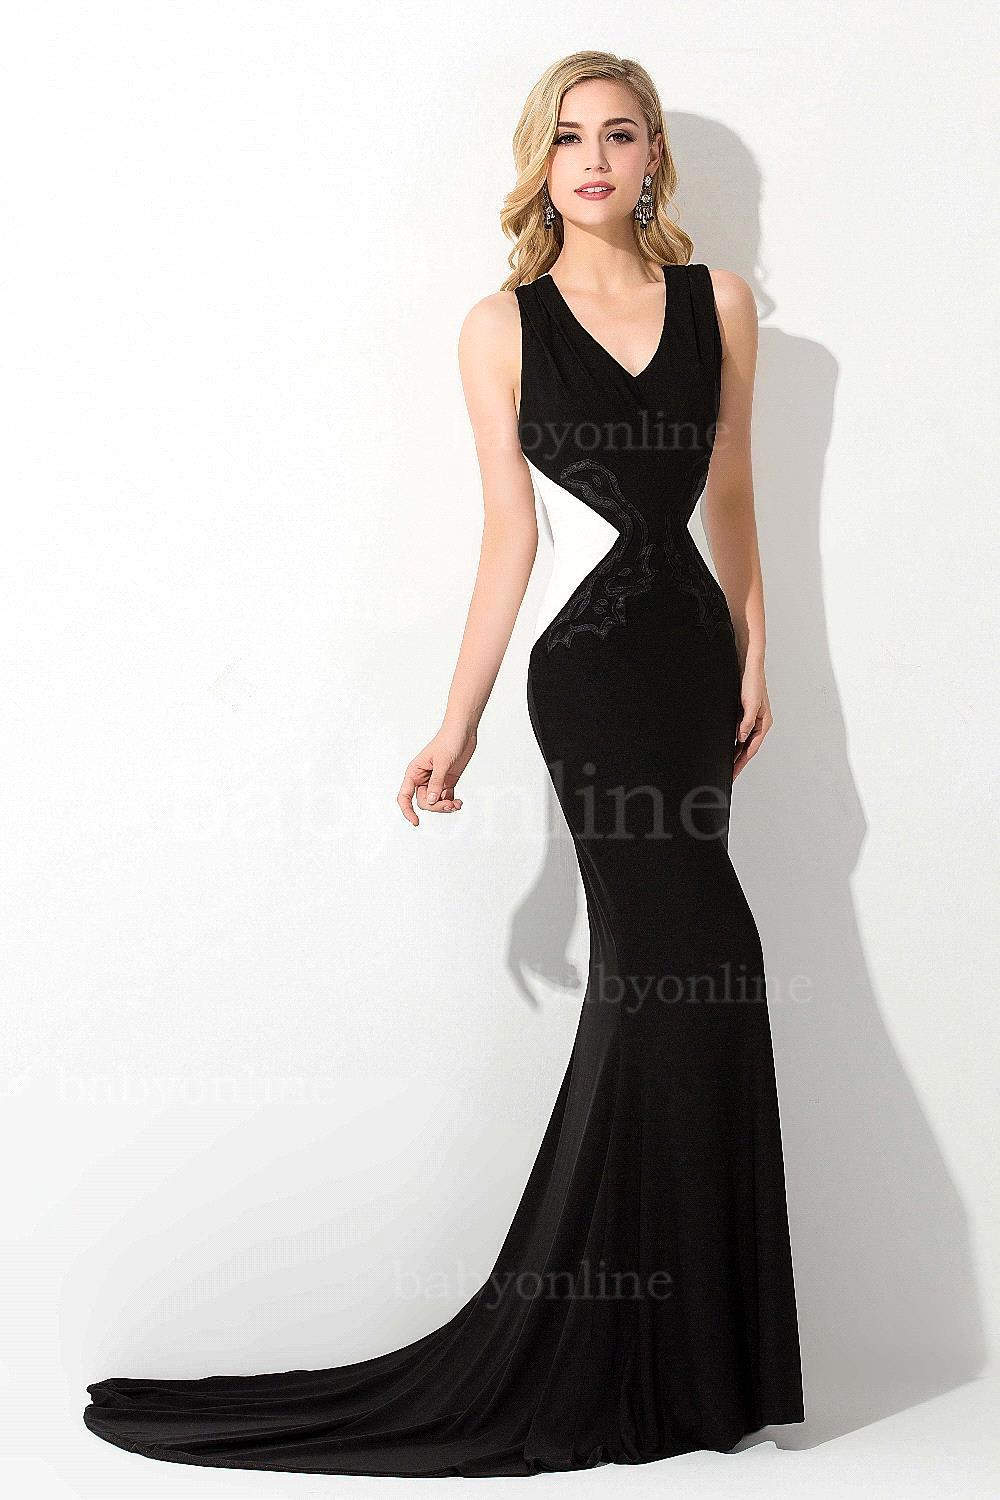 Aliexpress.com : Buy Formal Black And White Evening Gowns Backless ...